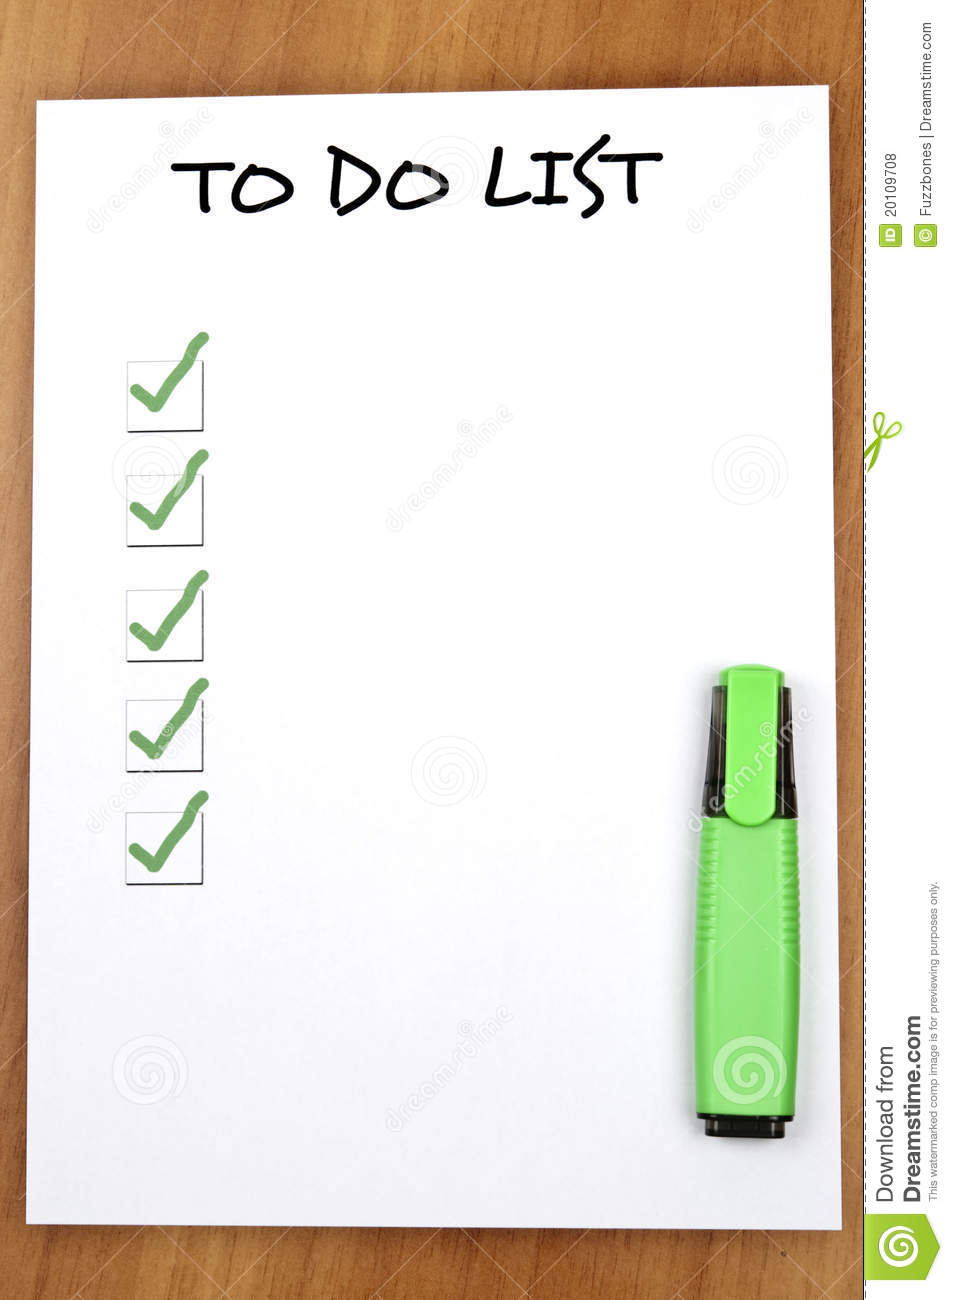 Empty To Do List Royalty Free Stock Photos - Image: 20109708